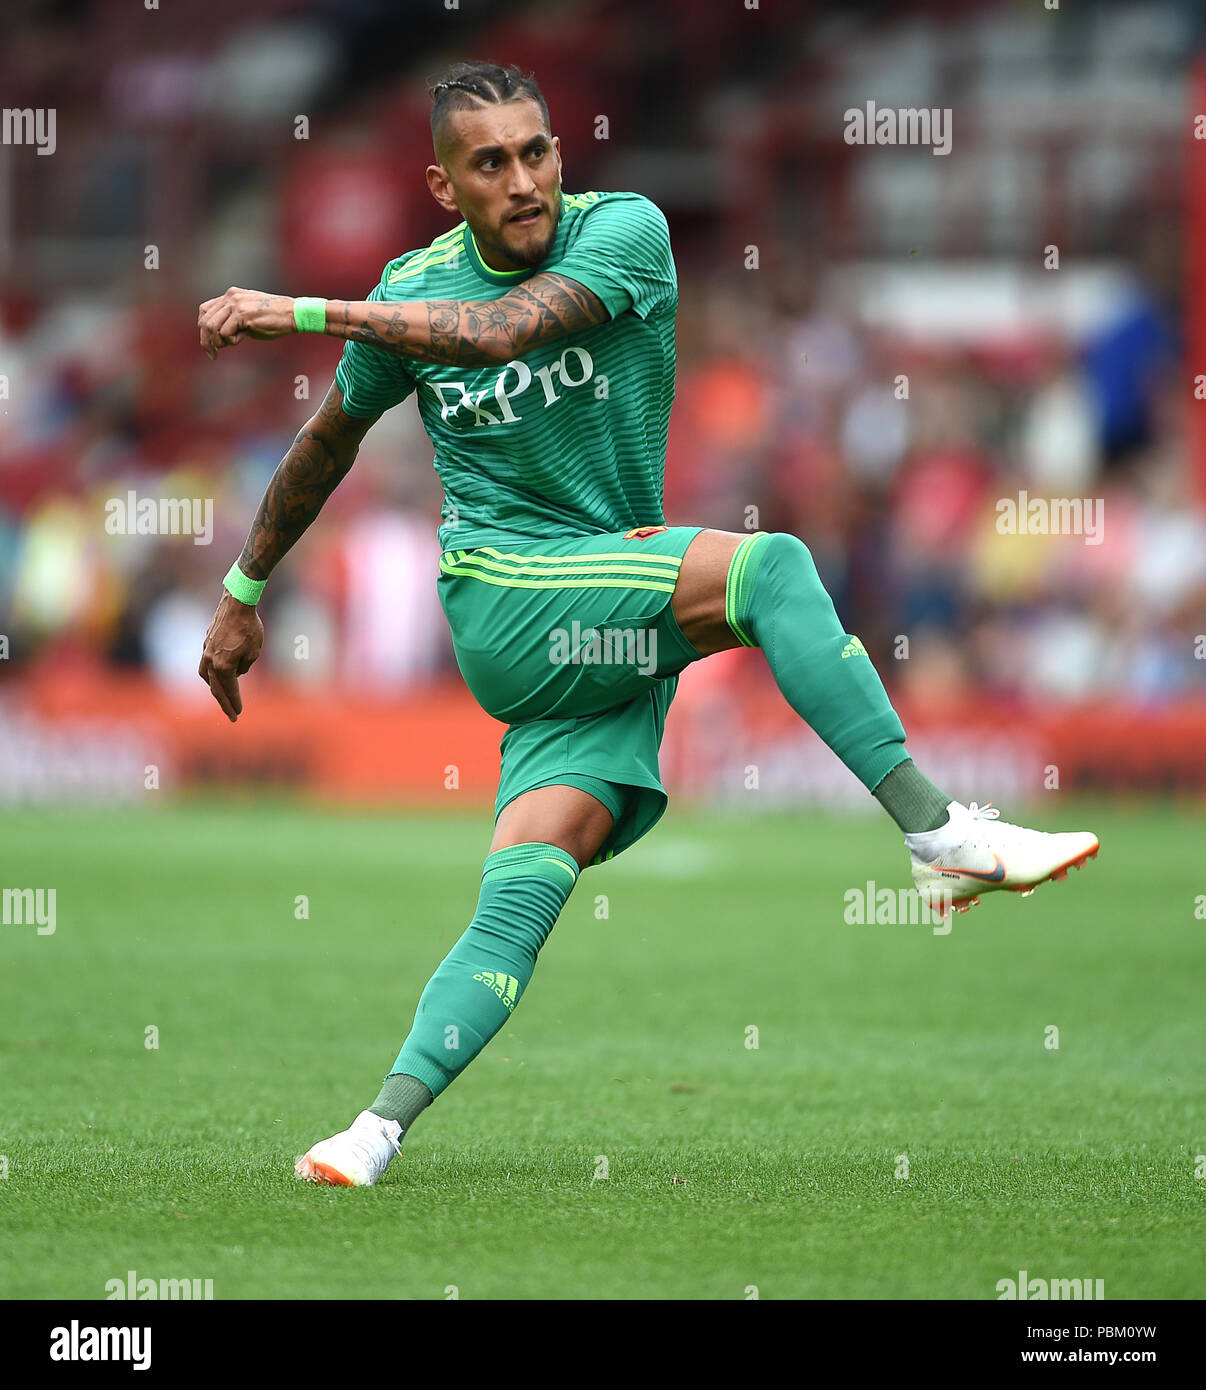 """Watford's Roberto Pereyra during the pre-season friendly match at Griffin Park, London. PRESS ASSOCIATION Photo. Picture date: Saturday July 28, 2018. See PA story SOCCER Brentford. Photo credit should read: Daniel Hambury/PA Wire. RESTRICTIONS: EDITORIAL USE ONLY No use with unauthorised audio, video, data, fixture lists, club/league logos or """"live"""" services. Online in-match use limited to 75 images, no video emulation. No use in betting, games or single club/league/player publications. Stock Photo"""